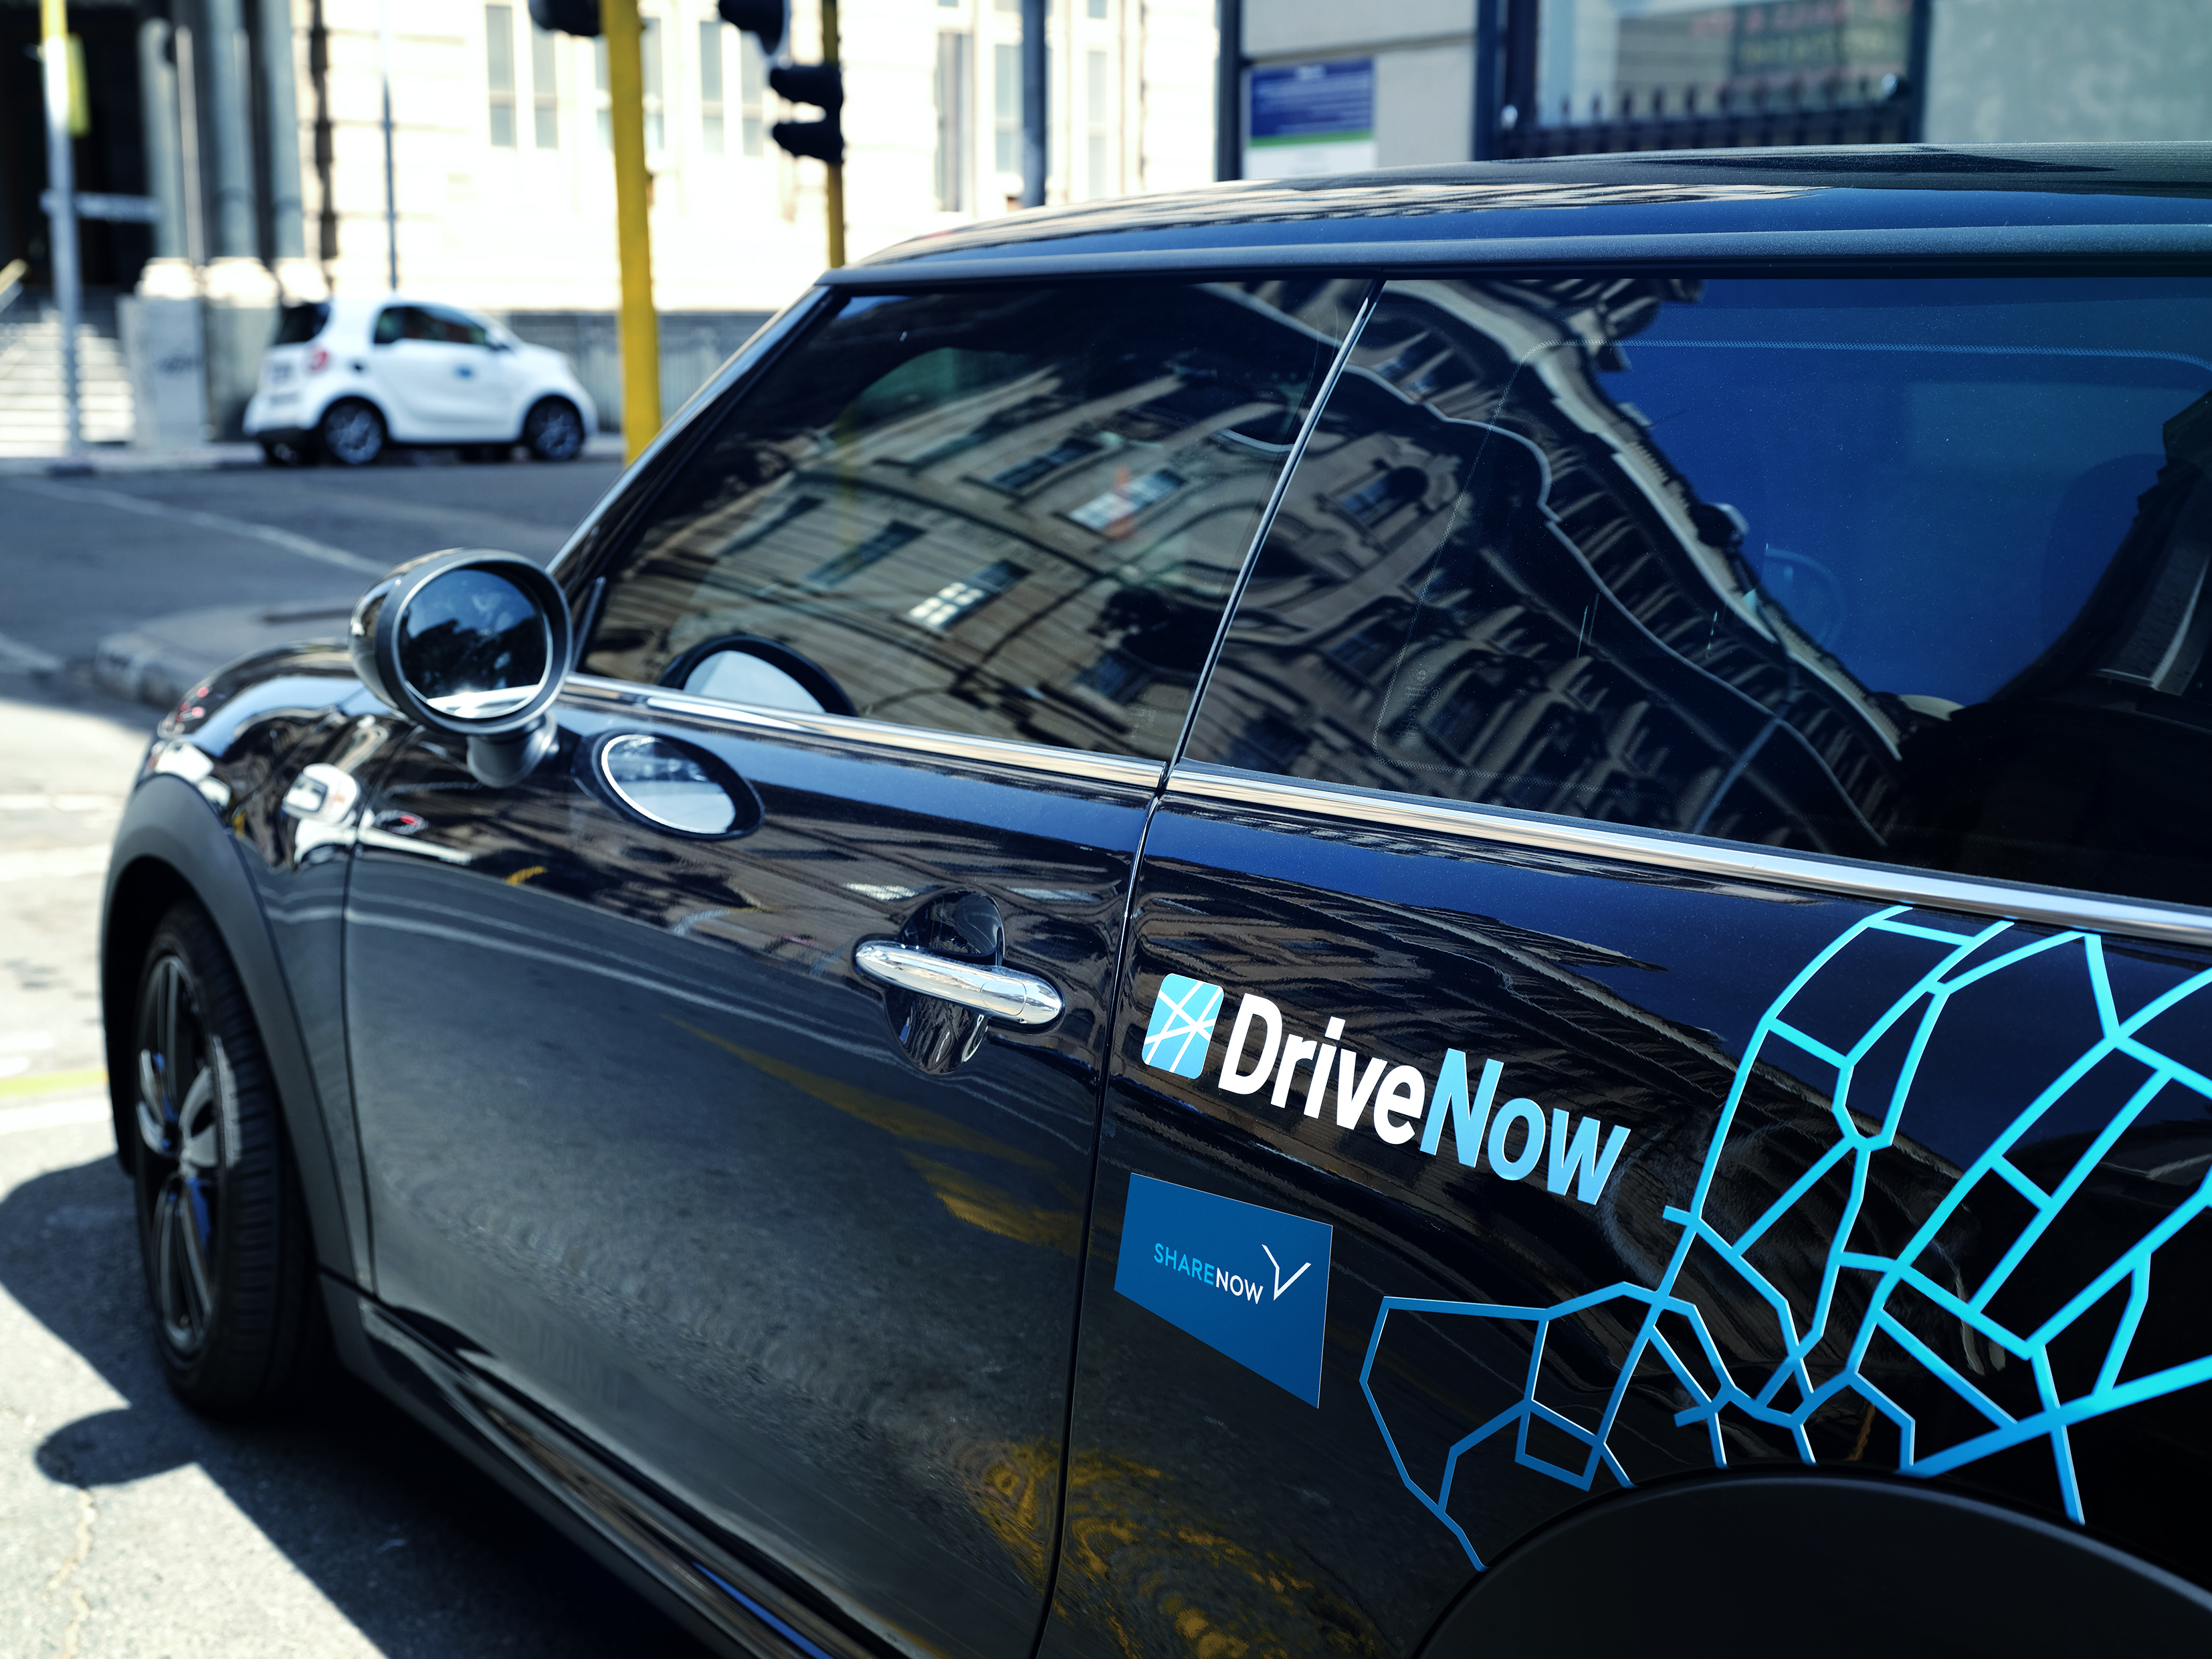 The DriveNow app is already showing BMW and Daimler vehicles..